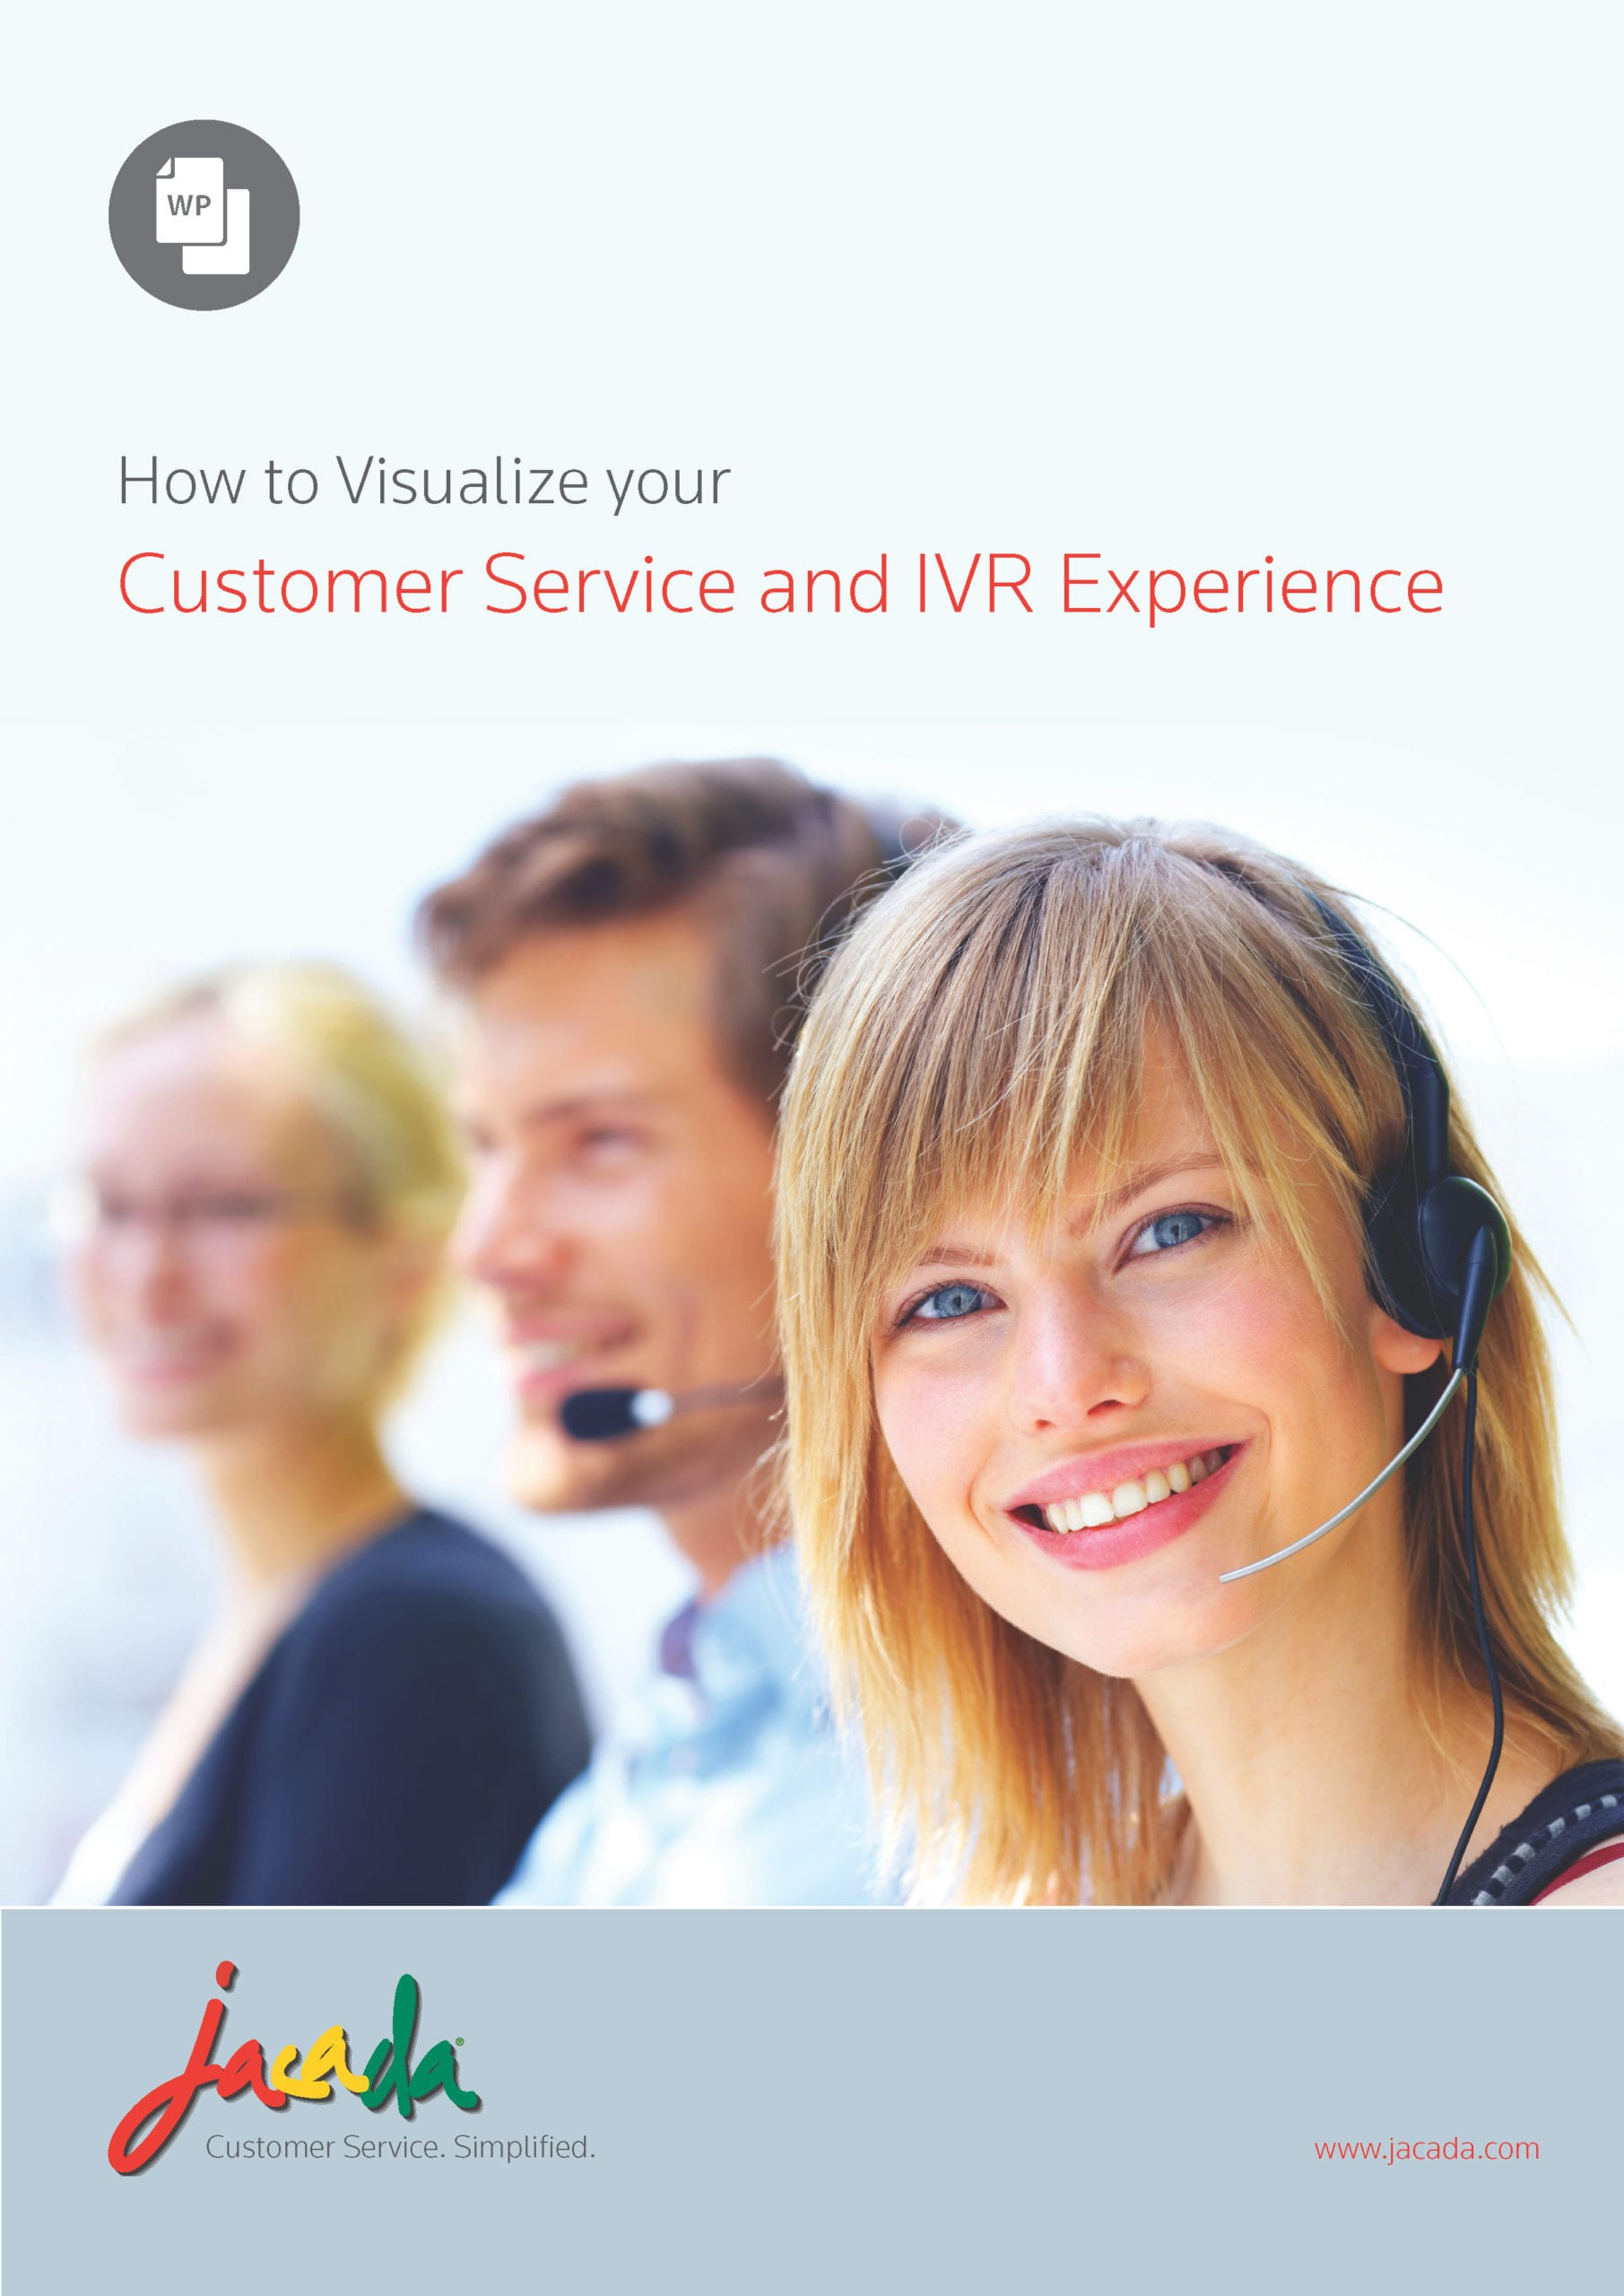 White_Paper_How_to_Visualize_your_customer_service_IVR_experience_Page_11_Page_01a